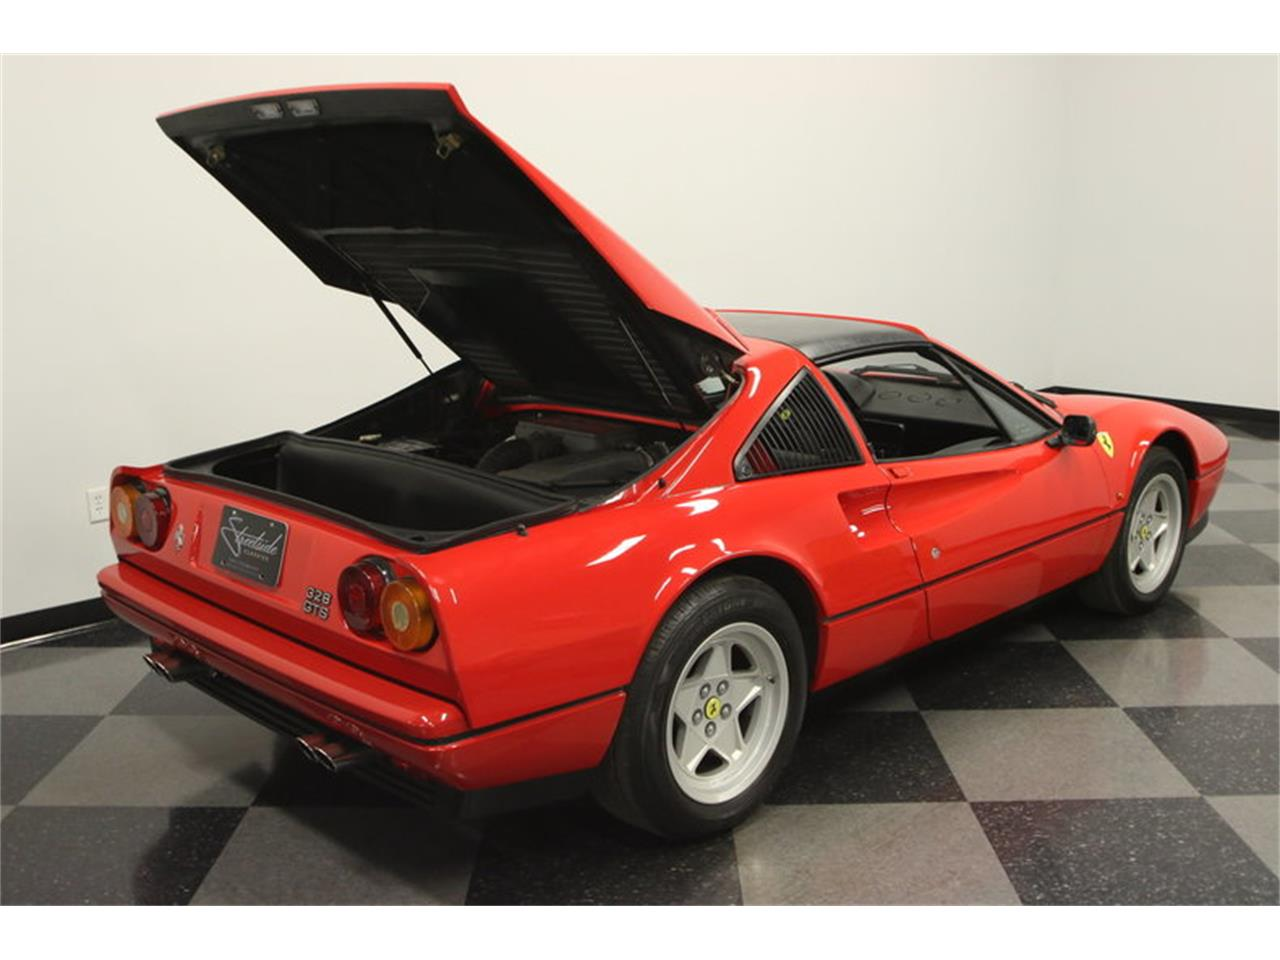 Large Picture of 1988 Ferrari 328 GTS located in Lutz Florida Offered by Streetside Classics - Tampa - MO3Z